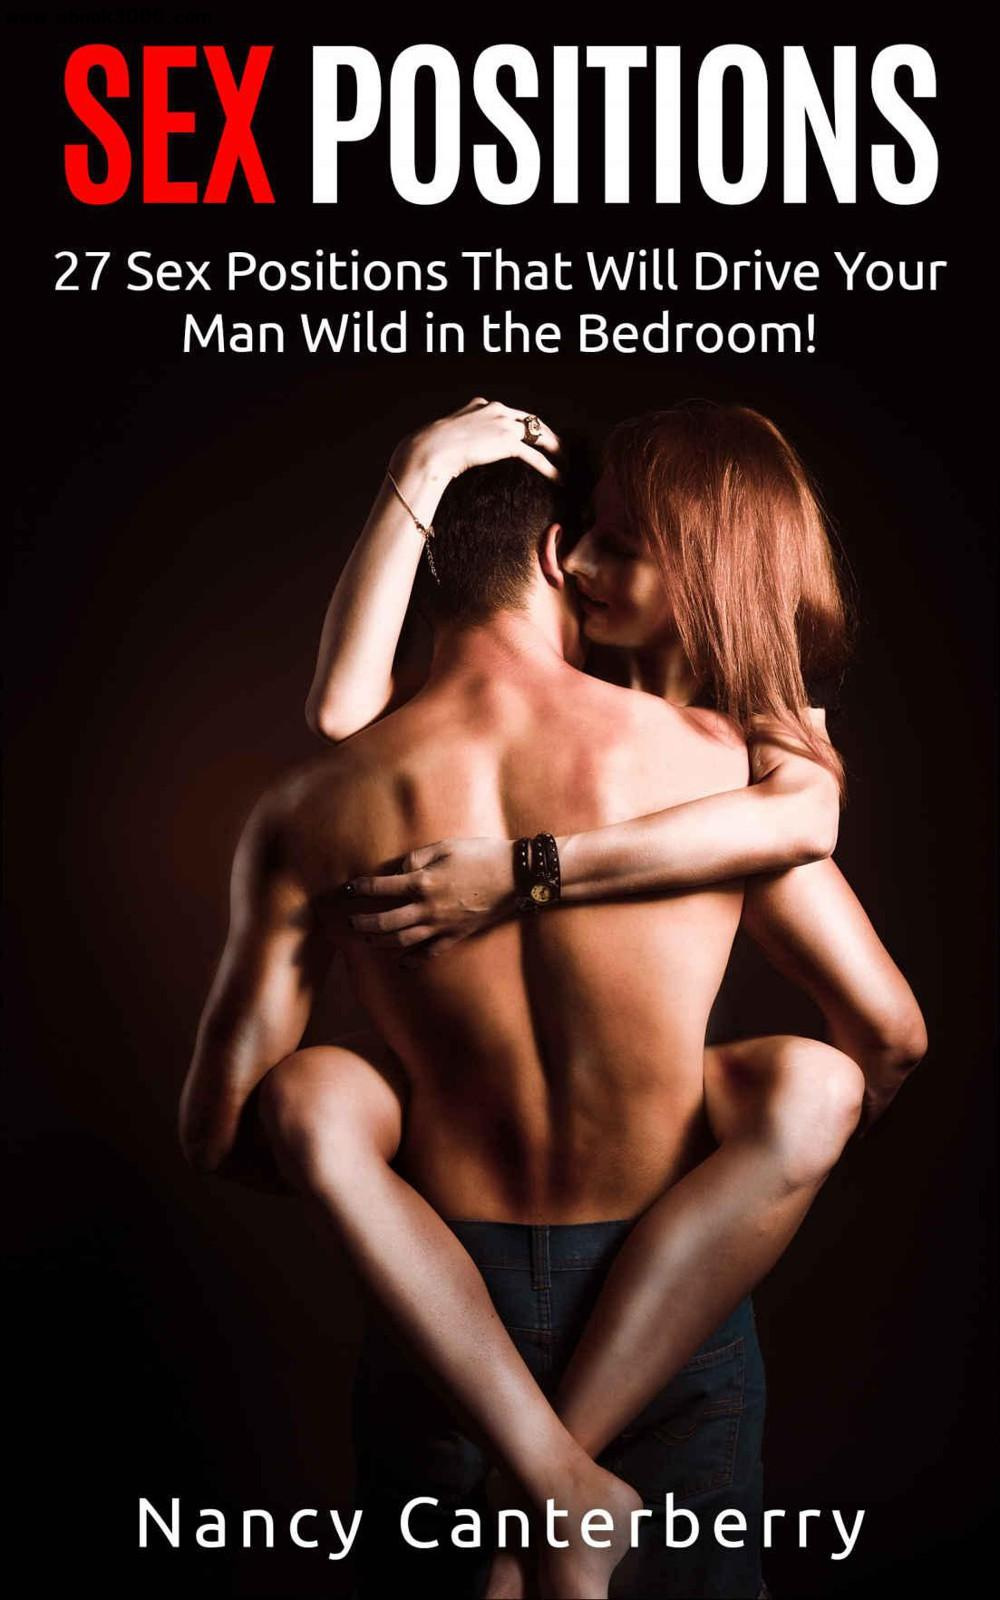 Sex Positions: 27 Sex Positions That Will Drive Your Man Wild in the Bedroom!